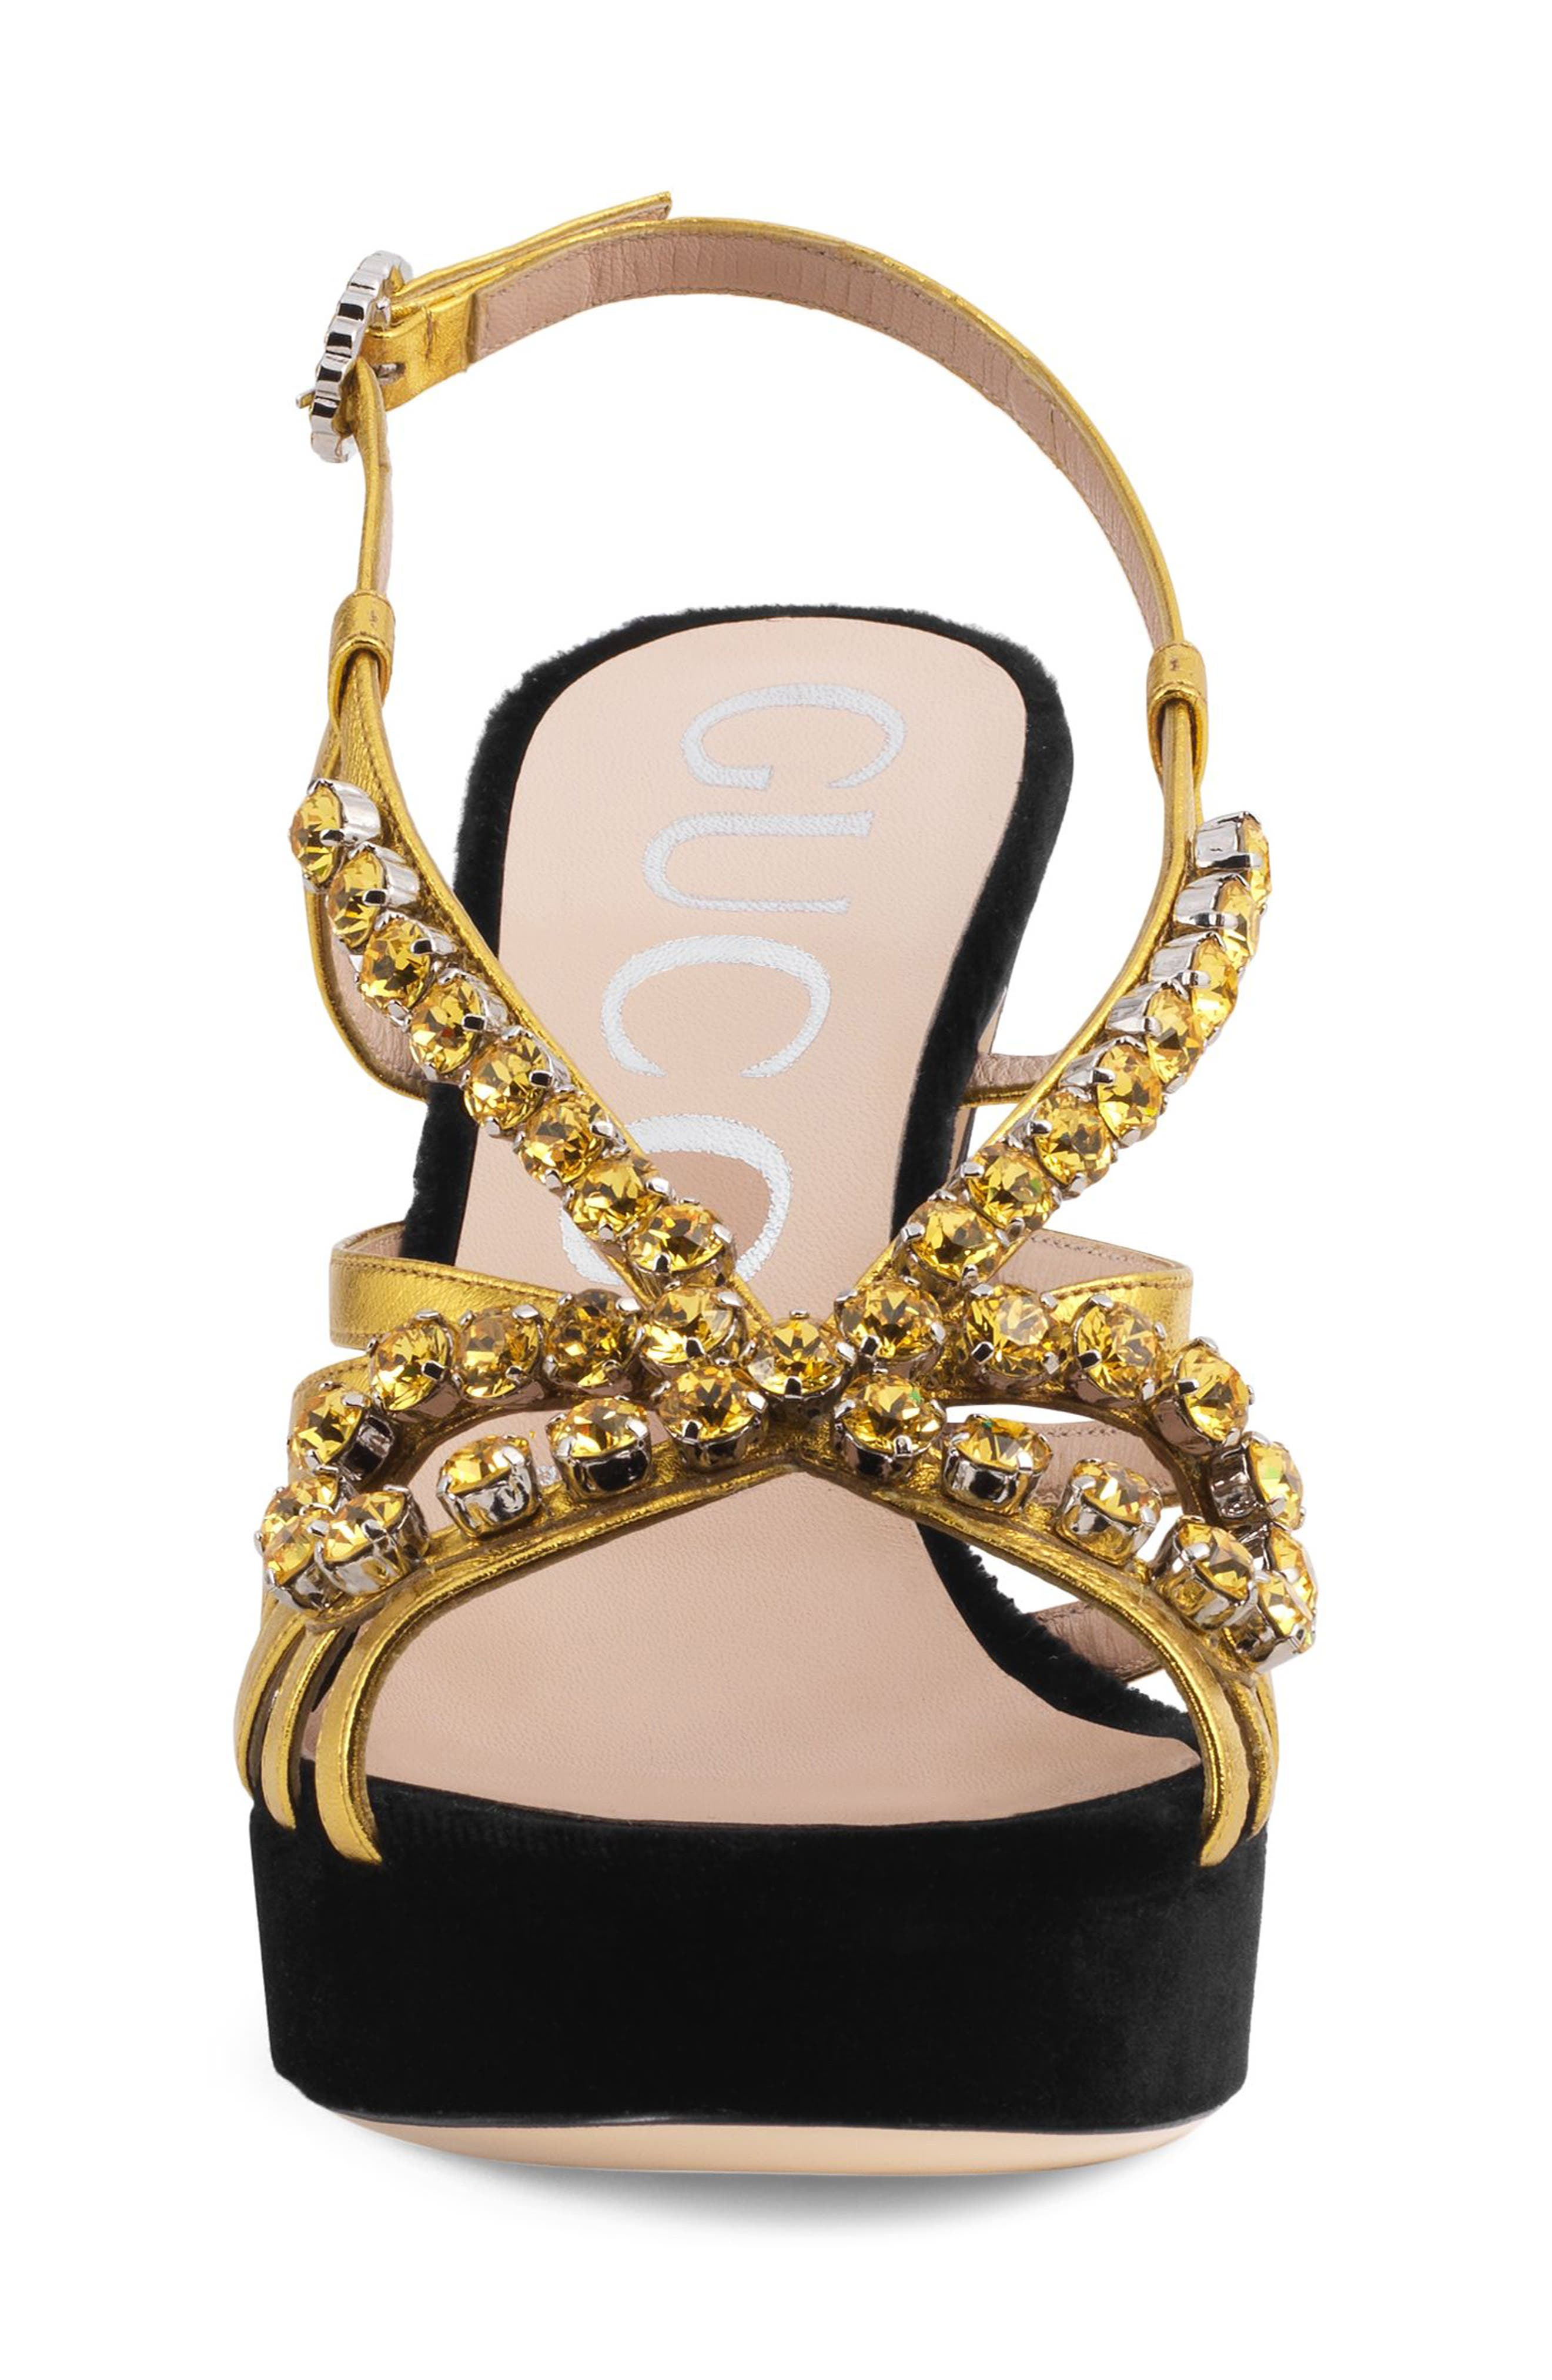 Zephyra Jewel Sandal,                             Alternate thumbnail 3, color,                             BLACK/ GOLD